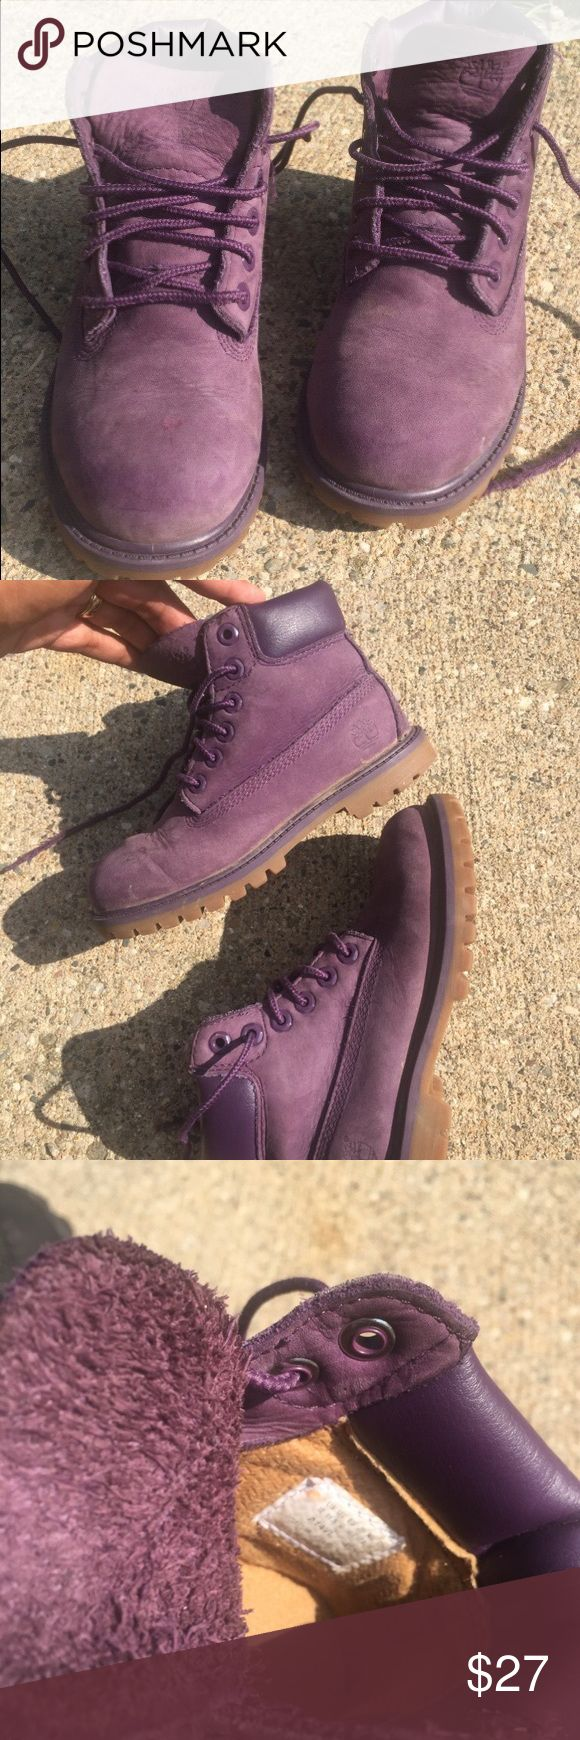 Girls purple timberlands - size 12 Used and not new. Kids, girls size 12 Timberland Shoes Boots